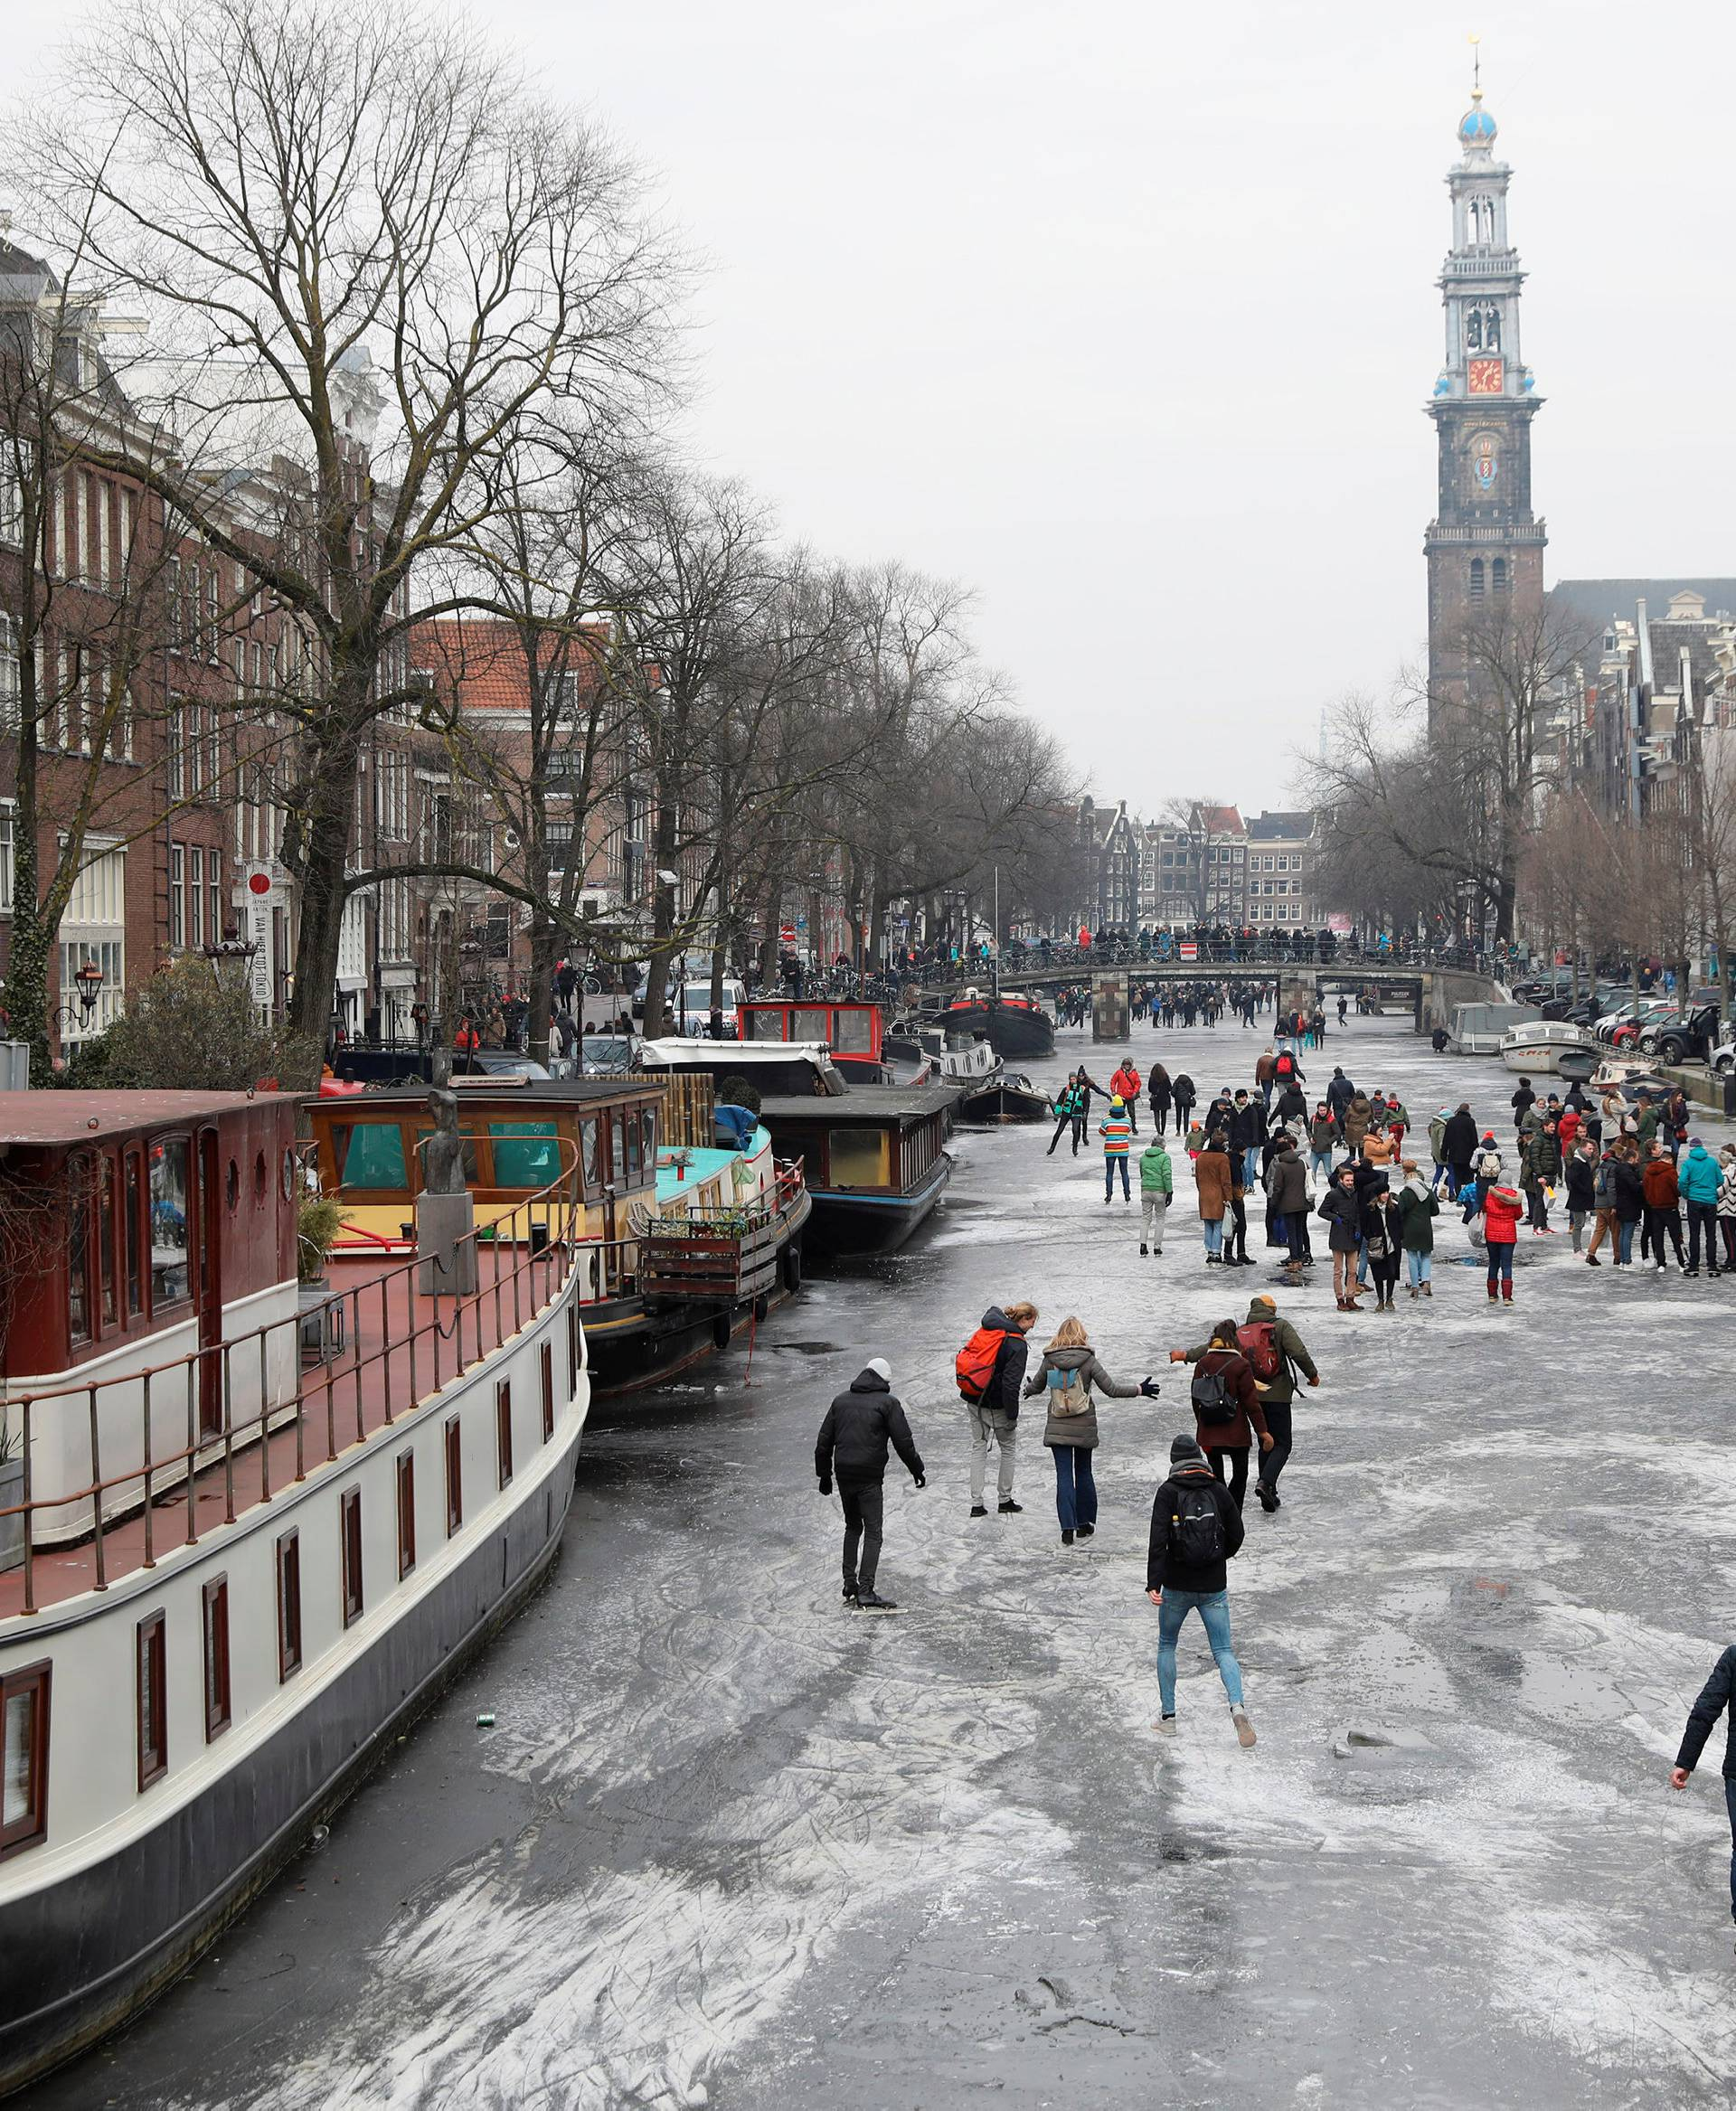 Ice skaters skate on the frozen Prinsengracht  canal during icy weather in Amsterdam,